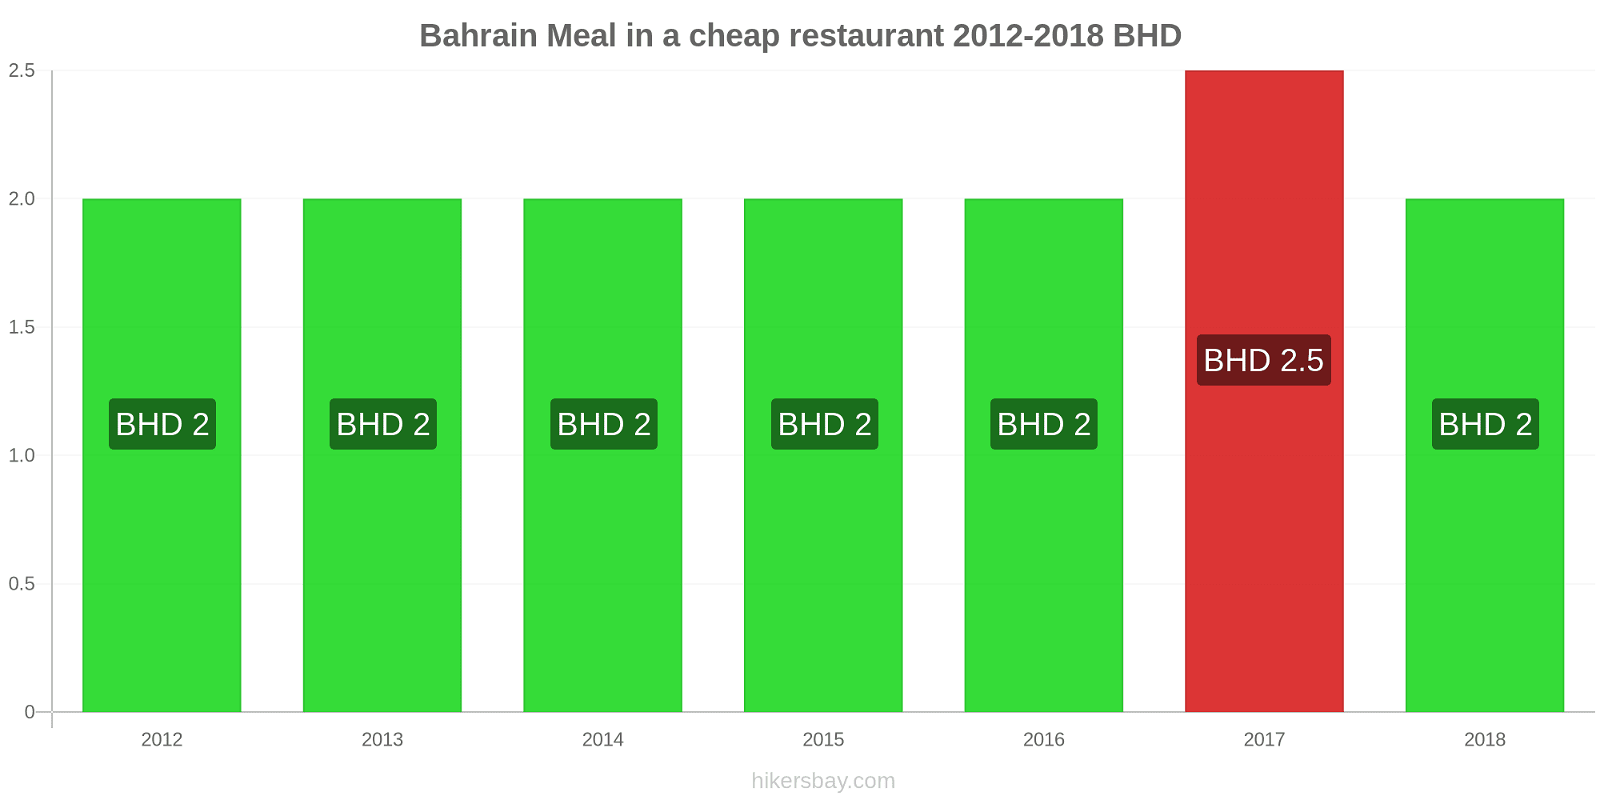 Bahrain price changes Meal in a cheap restaurant hikersbay.com